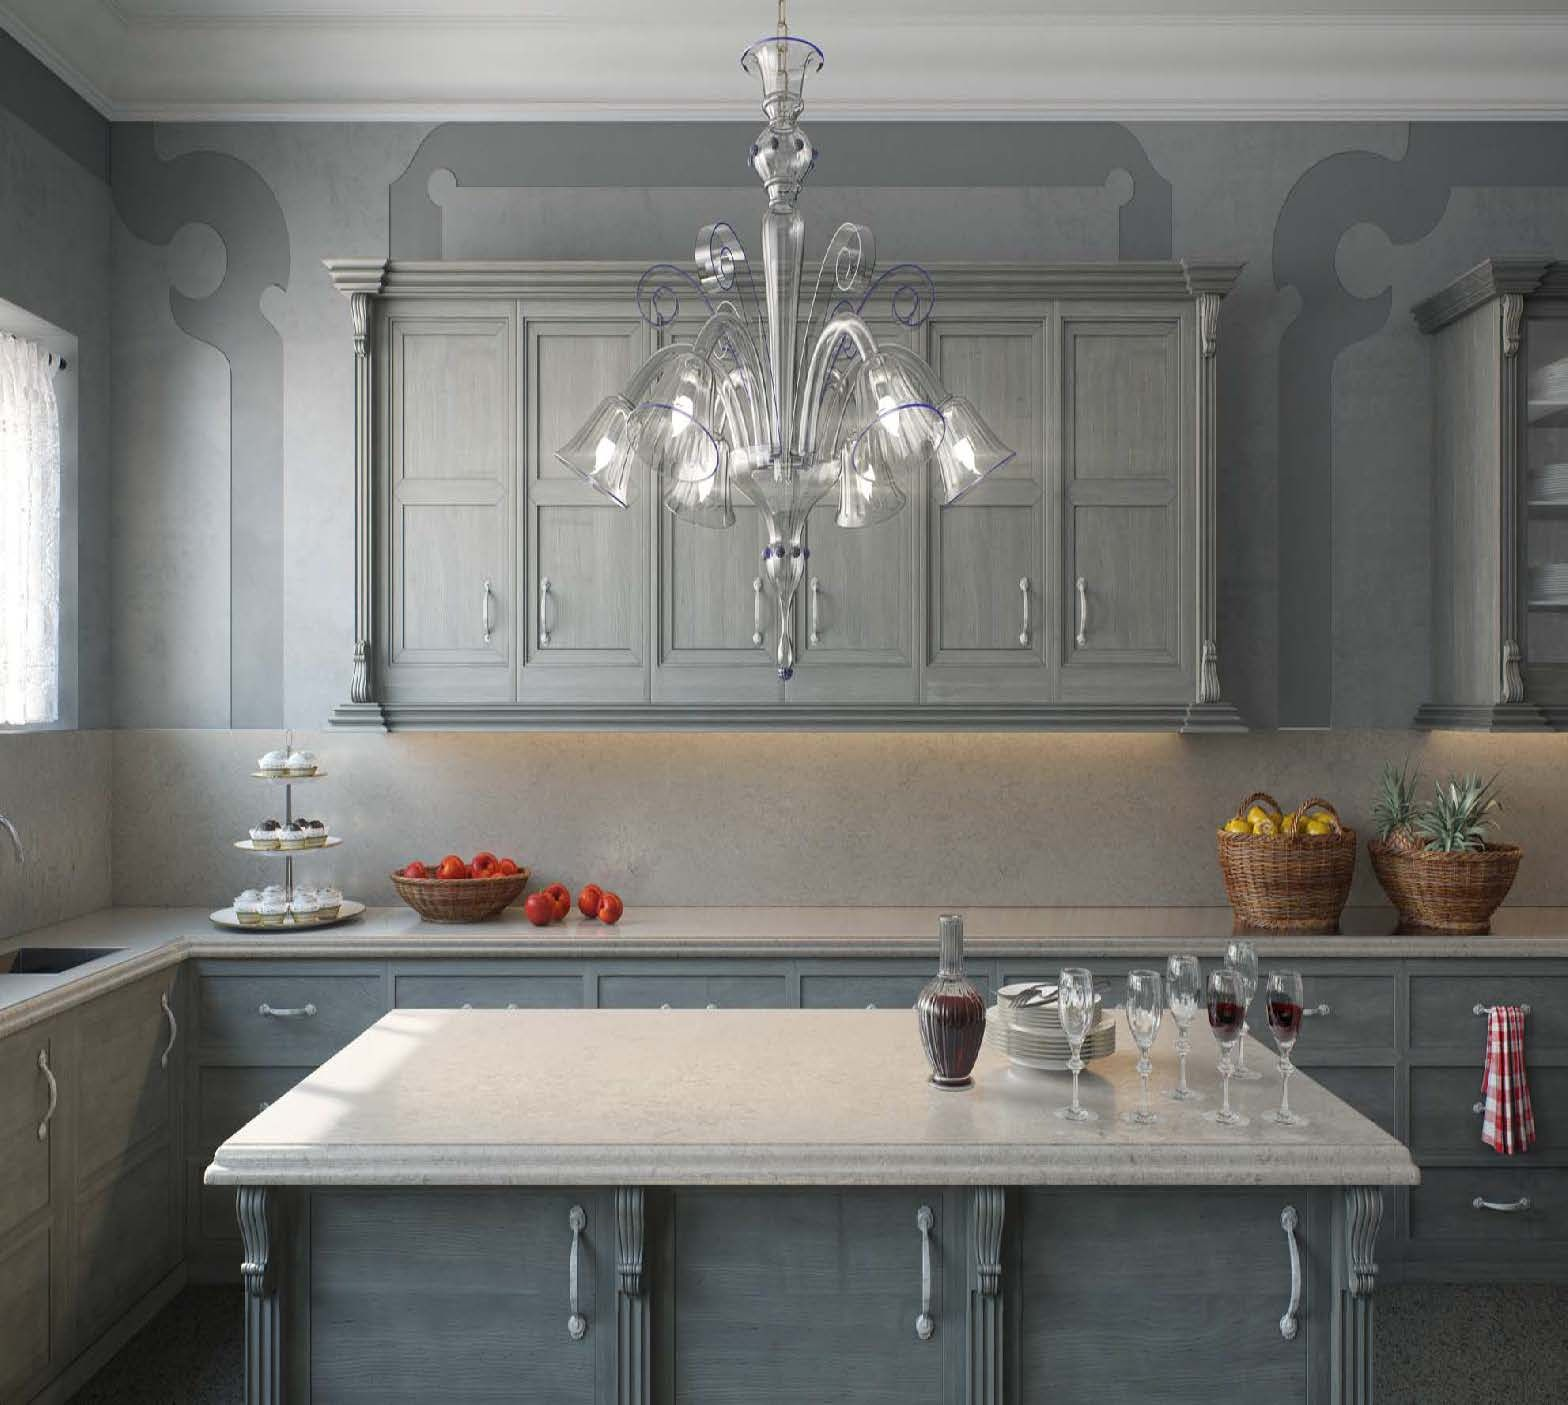 Eye For Design Grey Interiors Refined And Sophisticated: Caesarstone's Own Interpretation Of A